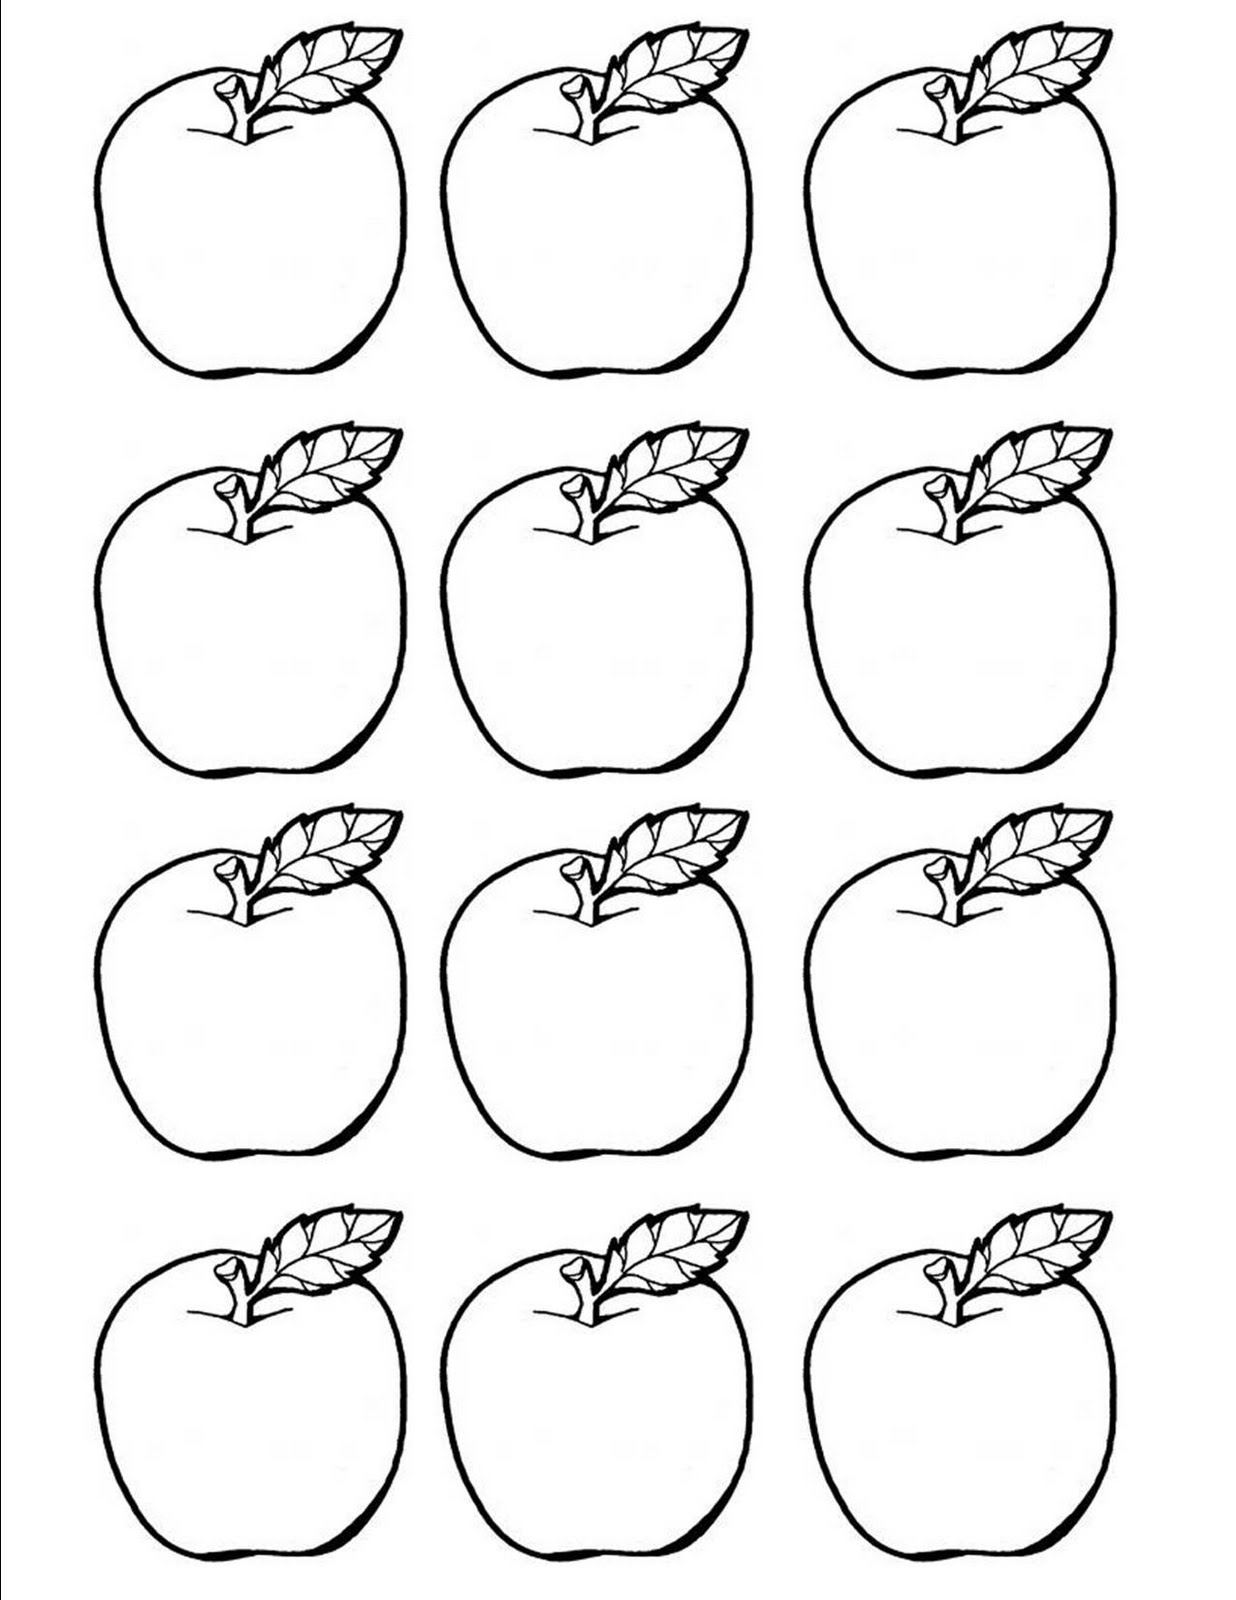 Cartoon Images Fall Wallpaper Apples Drawing At Getdrawings Com Free For Personal Use